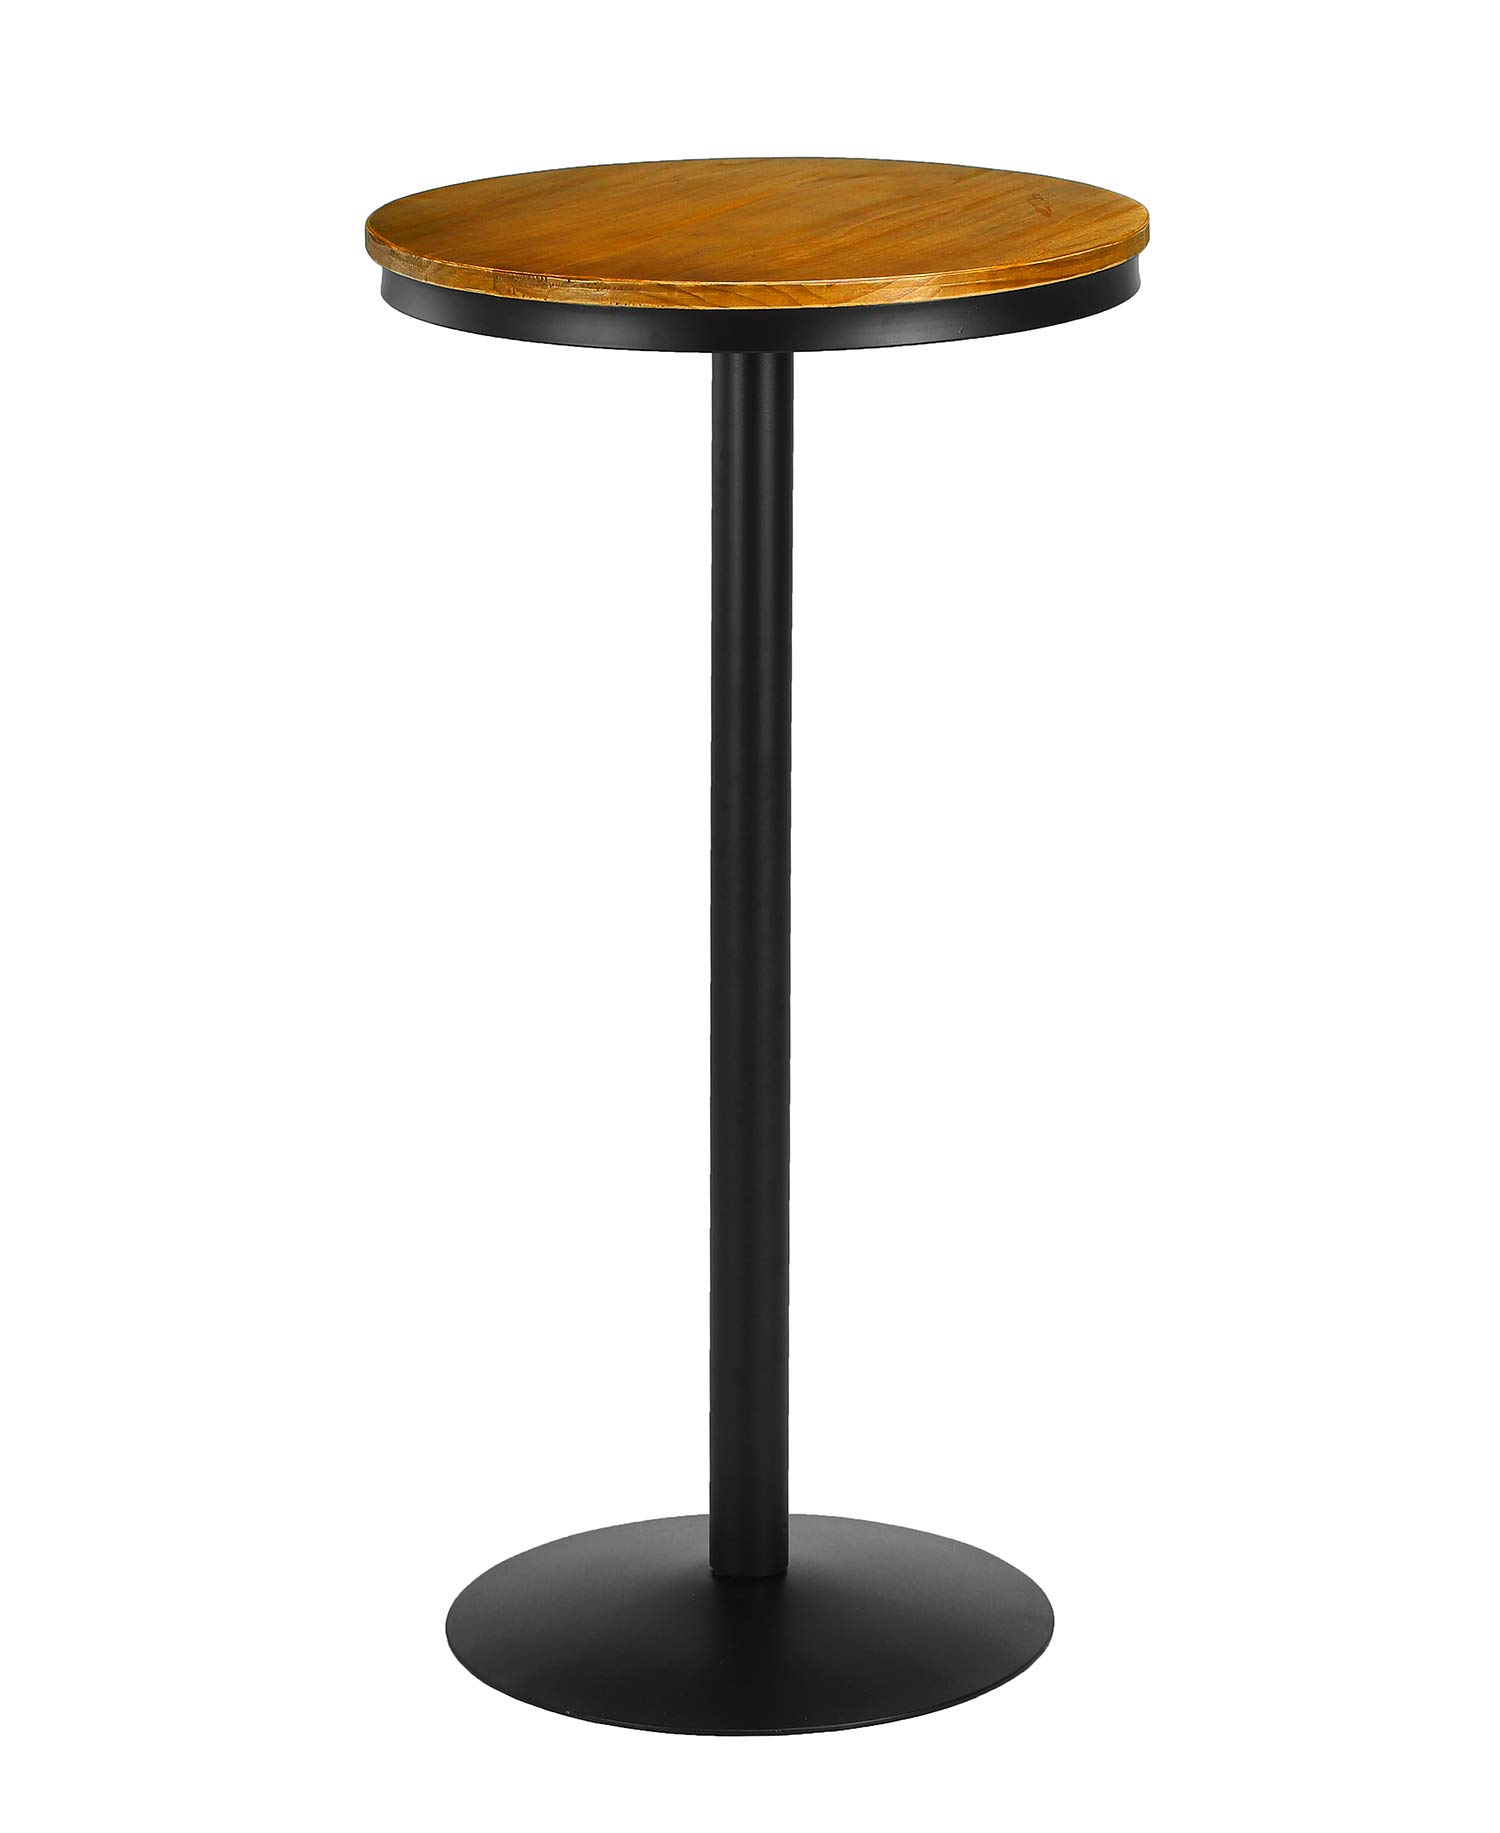 VILAVITA Wood Pub Table Round Bar Table Wood Top with Metal Leg and Base, 21.65 Inch Top and 41.5 Inch Height, Retro Finish by VILAVITA